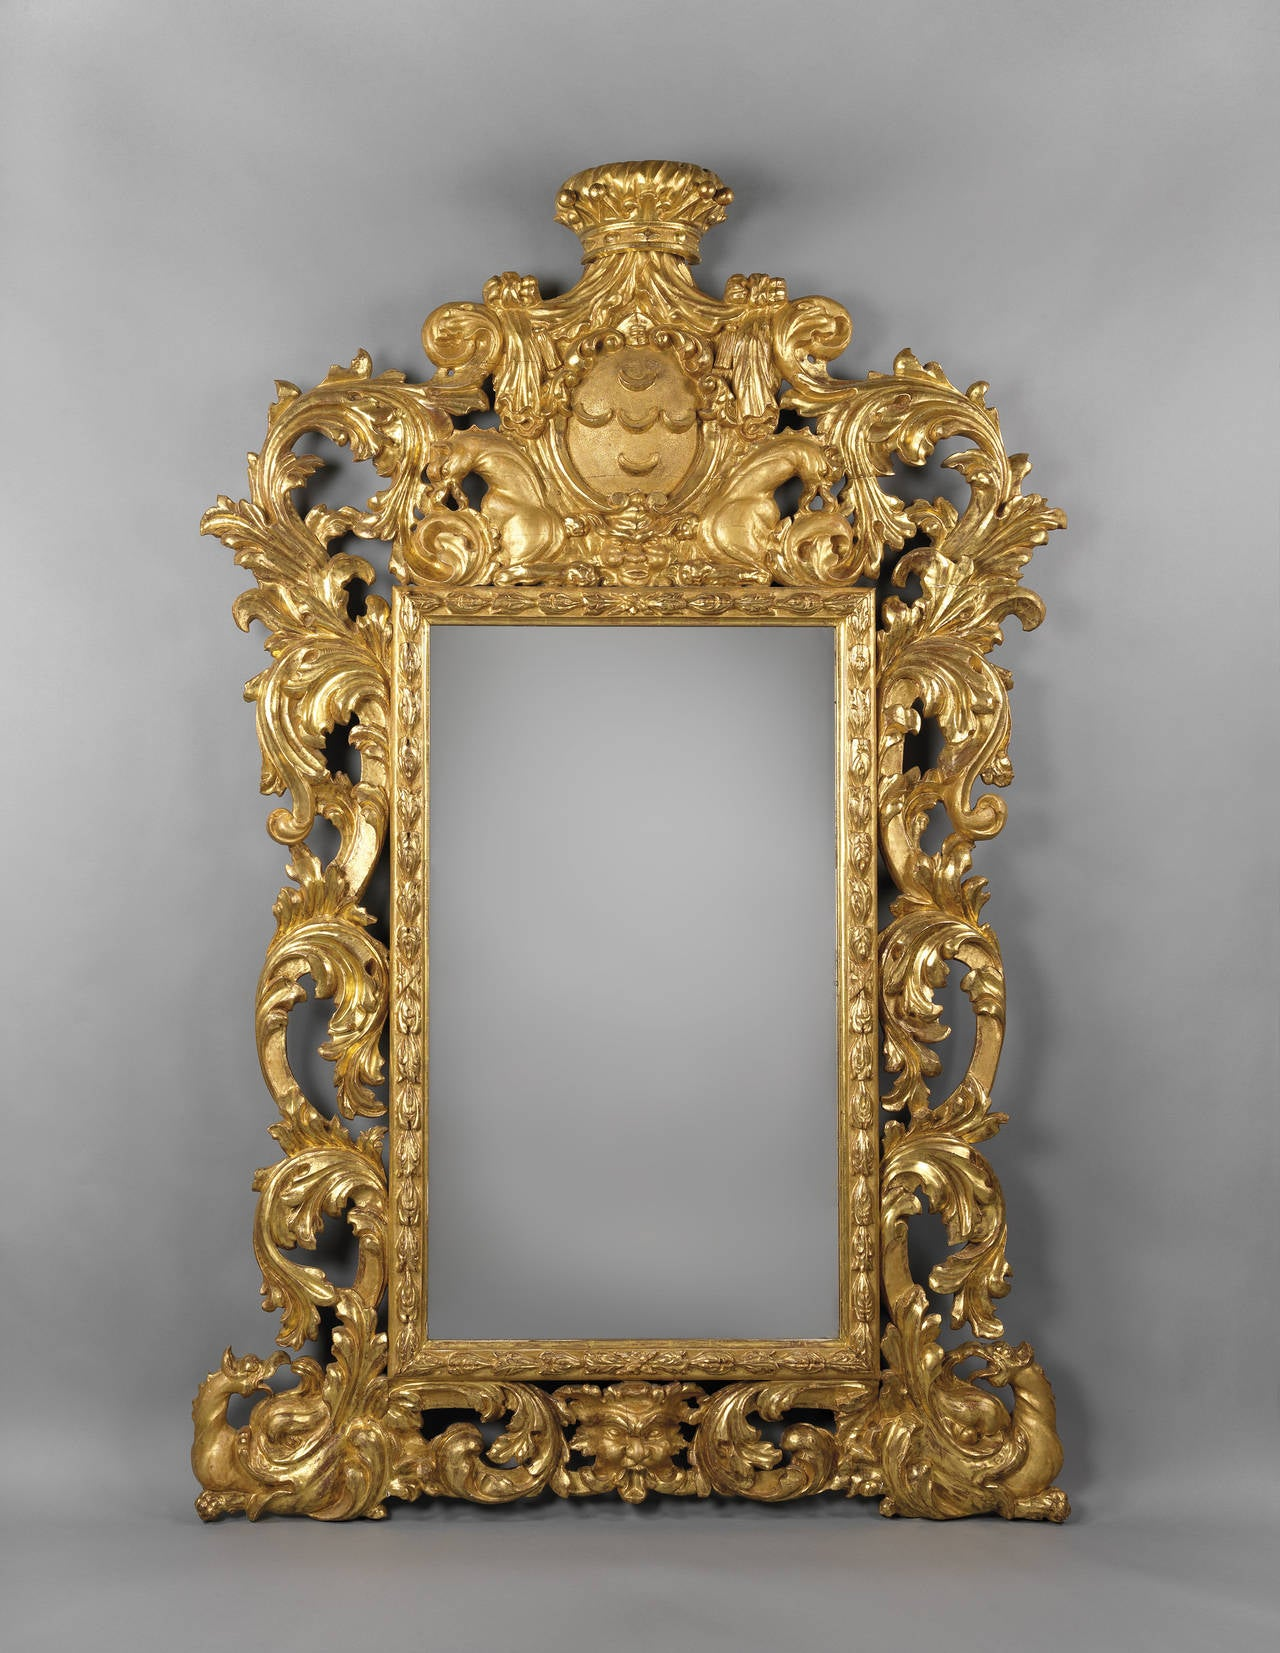 Baroque style carved giltwood mirror for sale at 1stdibs for Italian baroque mirror